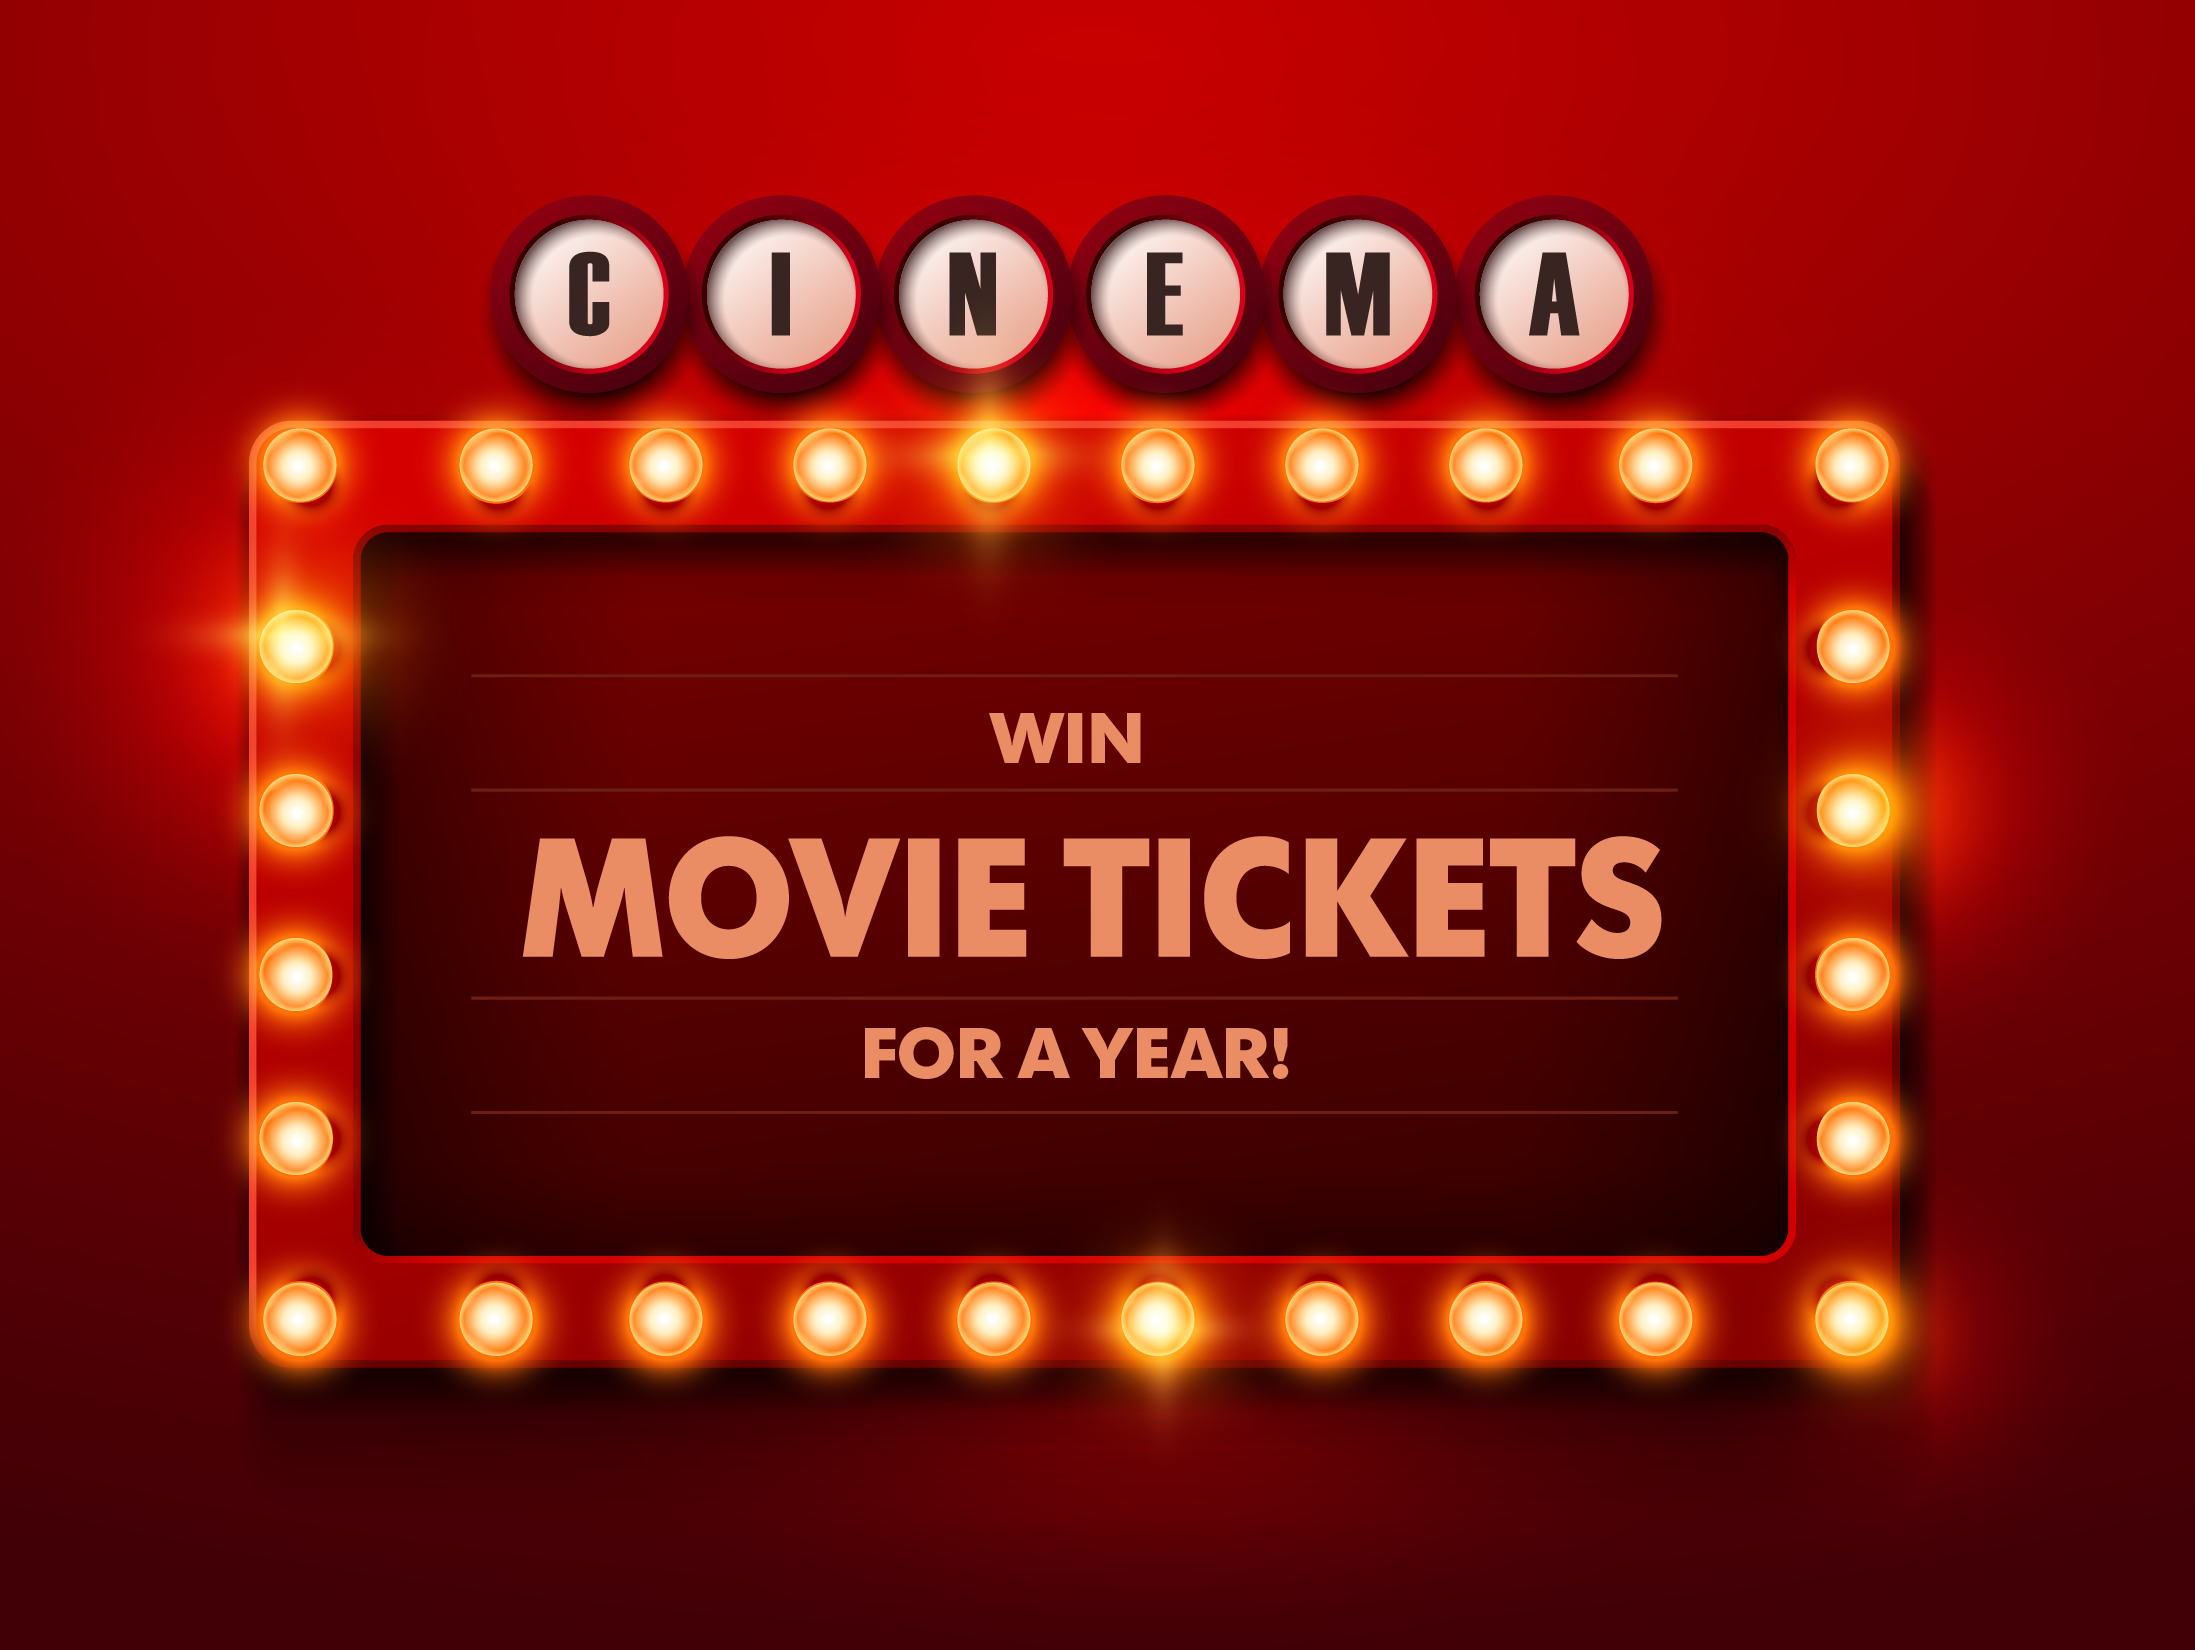 Enjoy a night at the movies every month for a year! Enter 1/30-2/25.